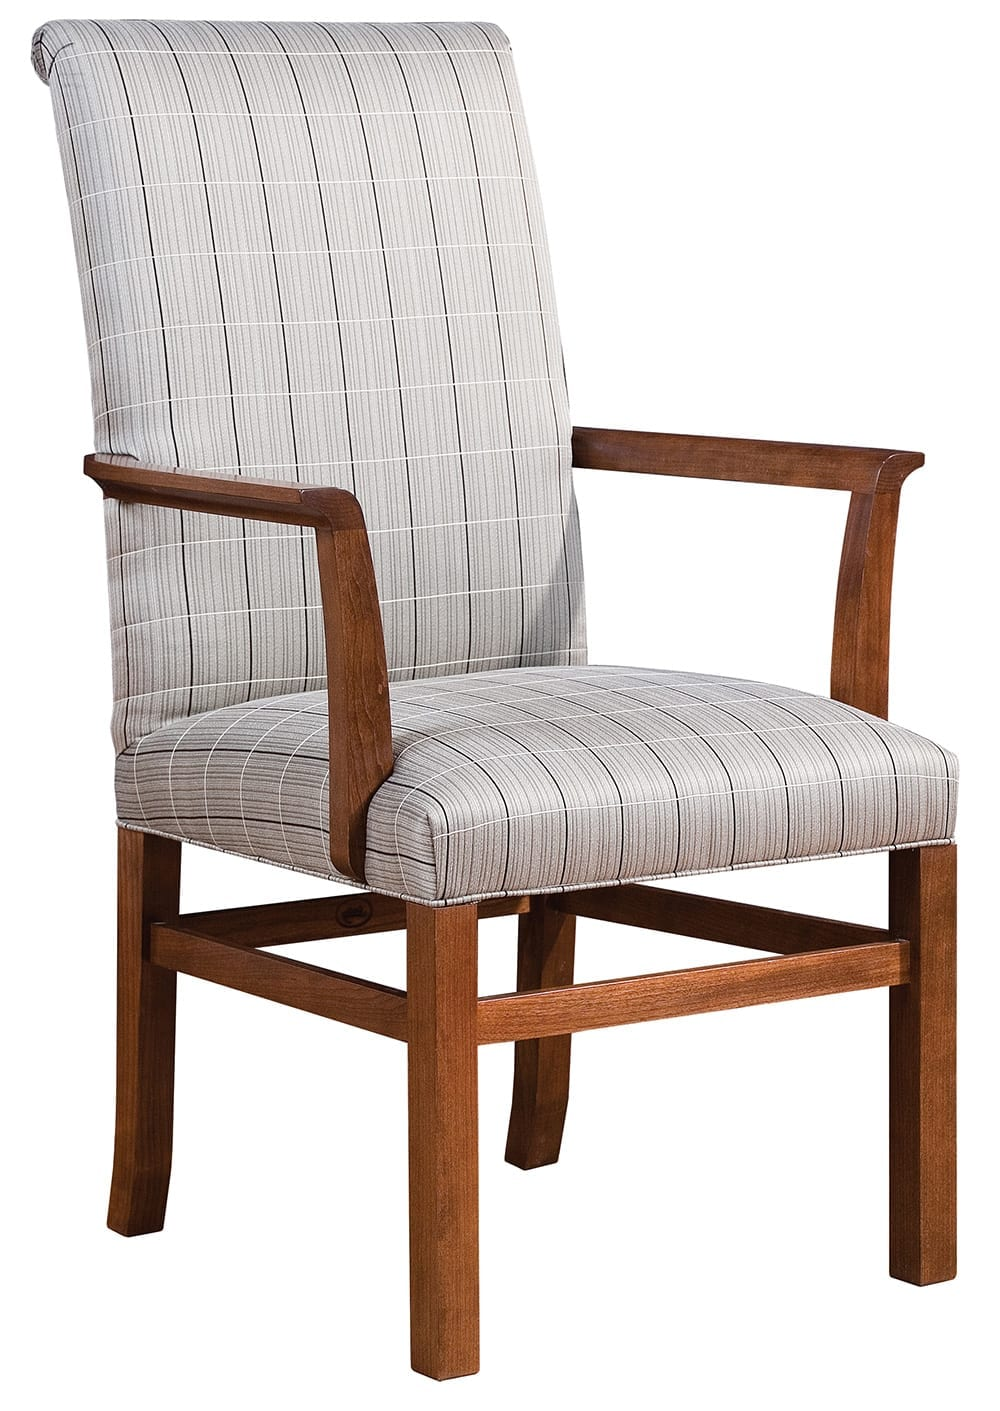 Upholstered Arm Chairs Upholstered Arm Chair Metropolitan Collection Stickley Audi Furniture